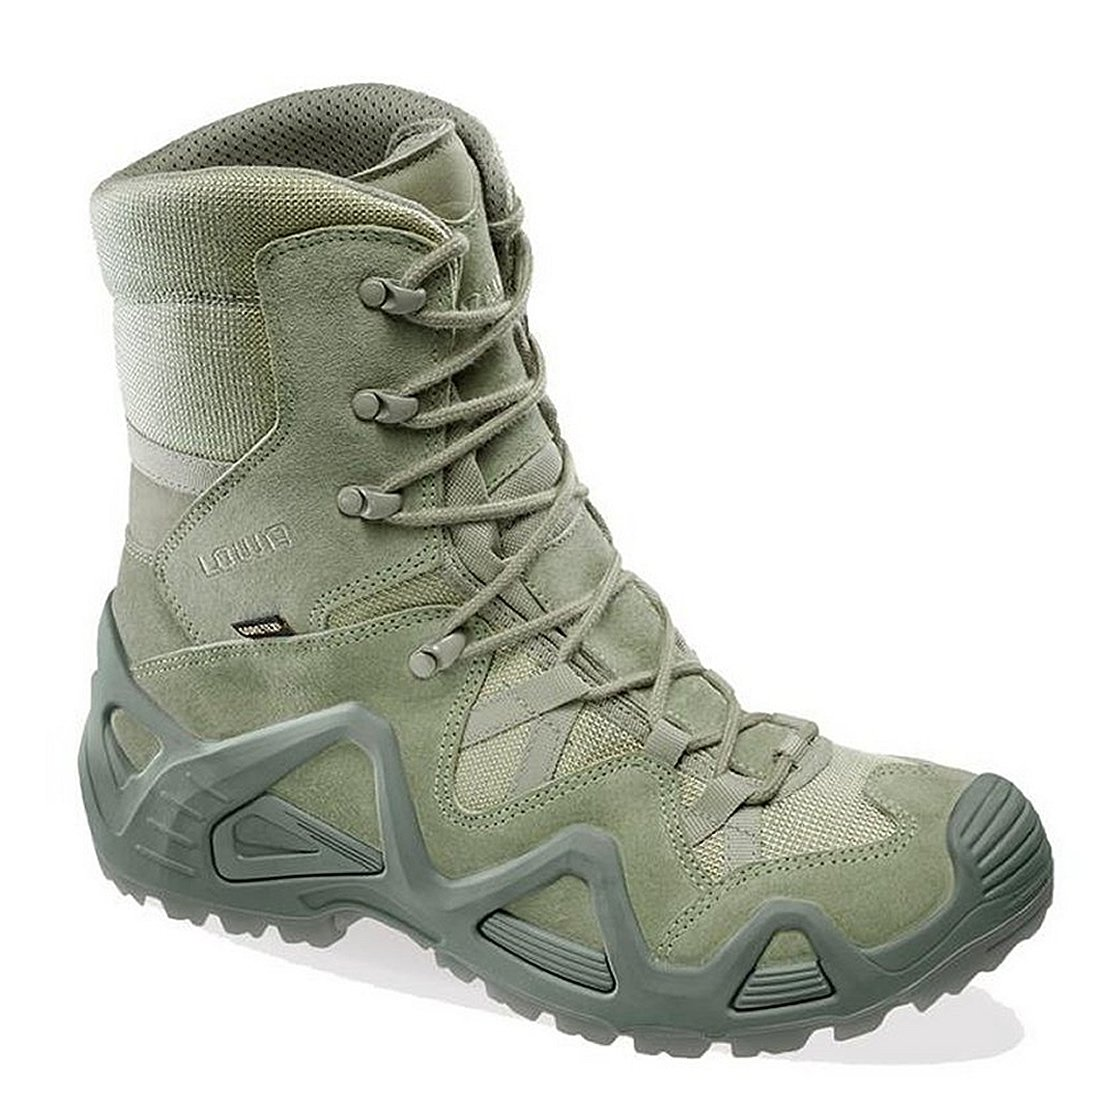 cheap for discount offer discounts top brands Lowa Zephyr GTX HI TF Sage: Amazon.co.uk: Sports & Outdoors